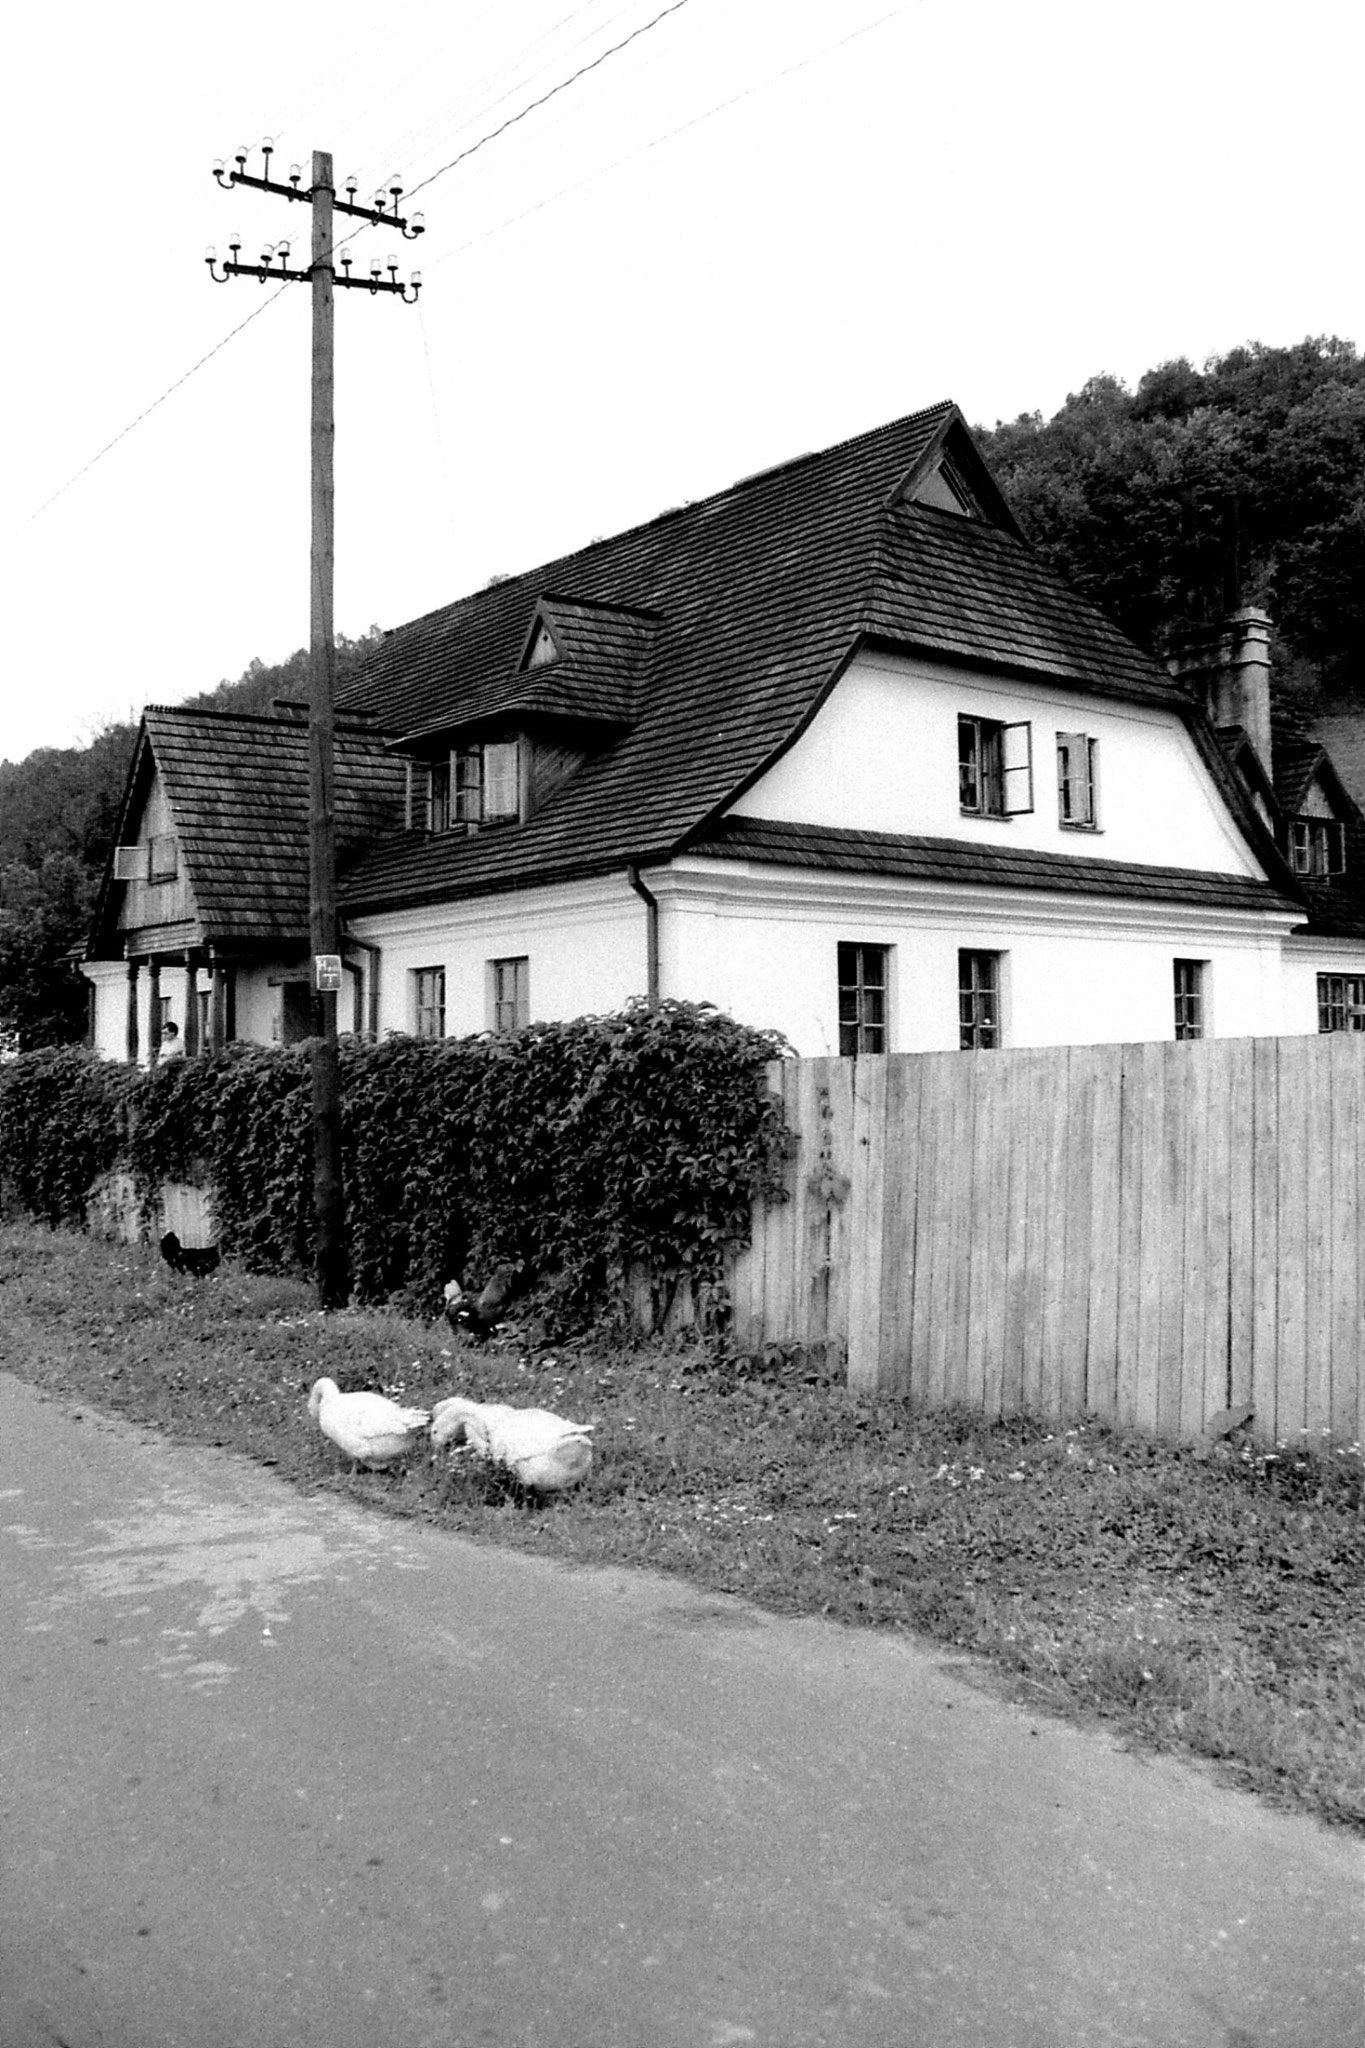 27/8/1988: 5: geese by Lublin Student Hostel, Kasimierz